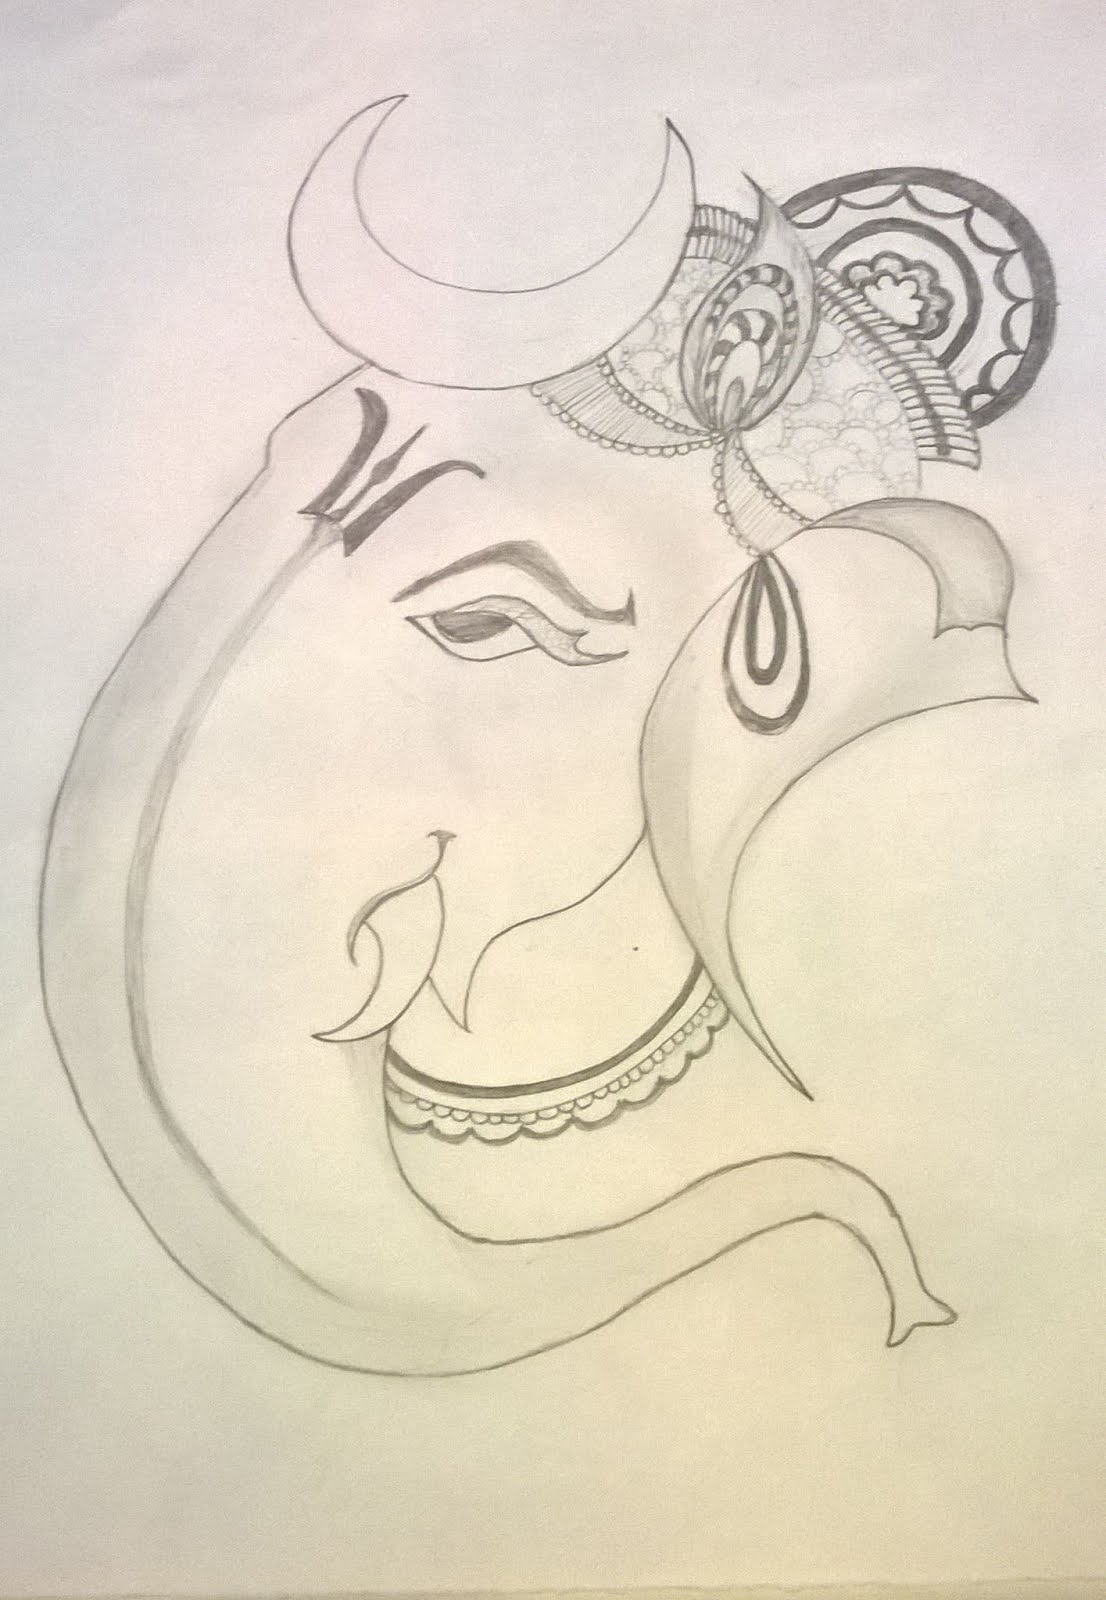 My pencil art vinayagar